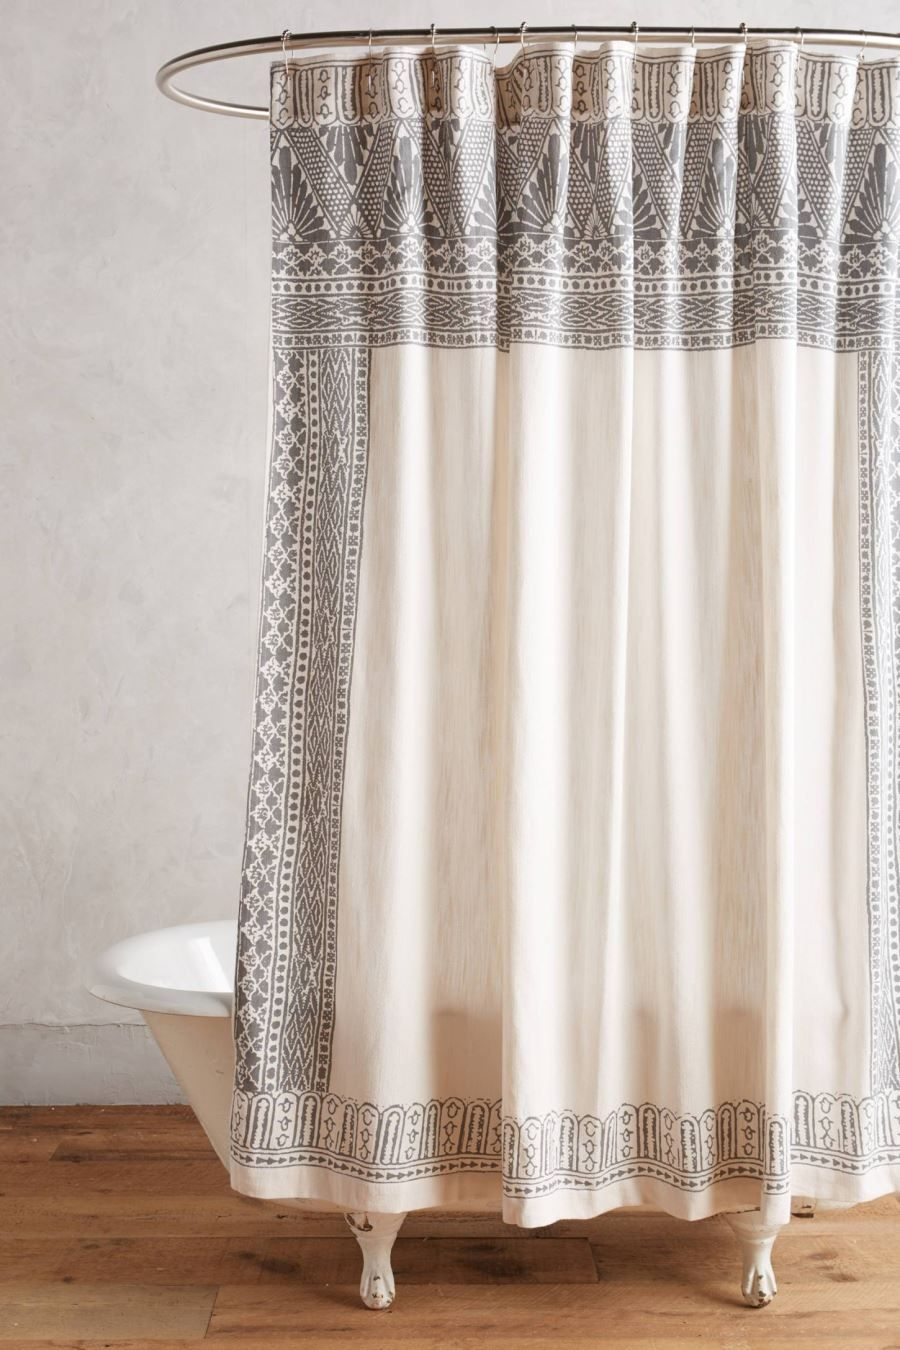 The Latest In Shower Curtain Trends Bed Bath Patterns